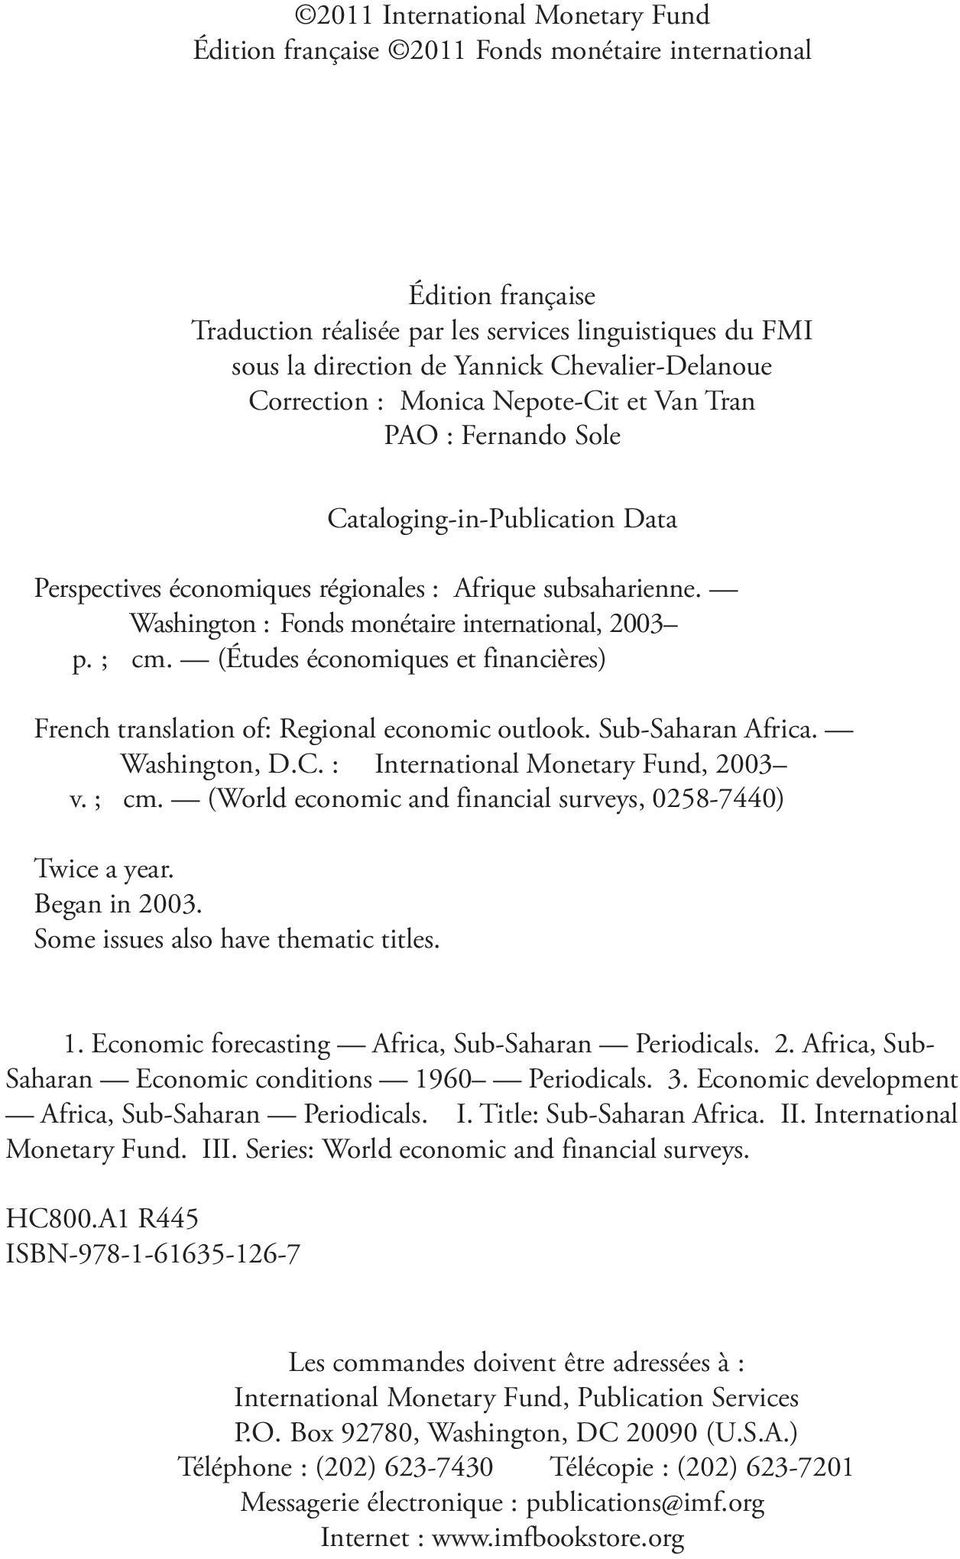 Washington : Fonds monétaire international, 2003 p. ; cm. (Études économiques et financières) French translation of: Regional economic outlook. Sub-Saharan Africa. Washington, D.C.